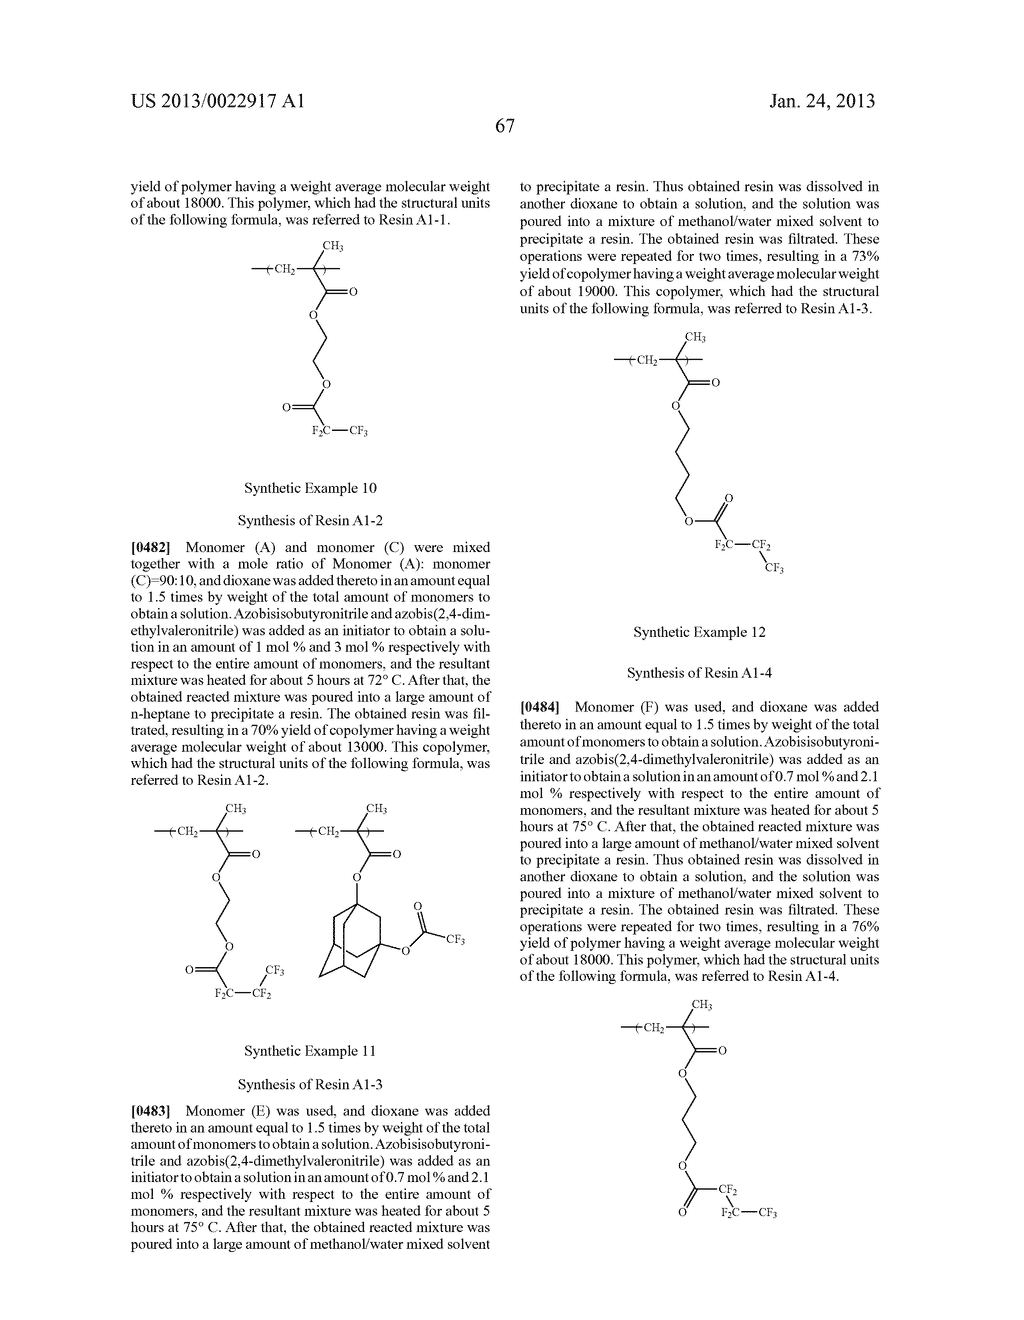 RESIST COMPOSITION AND METHOD FOR PRODUCING RESIST PATTERN - diagram, schematic, and image 68